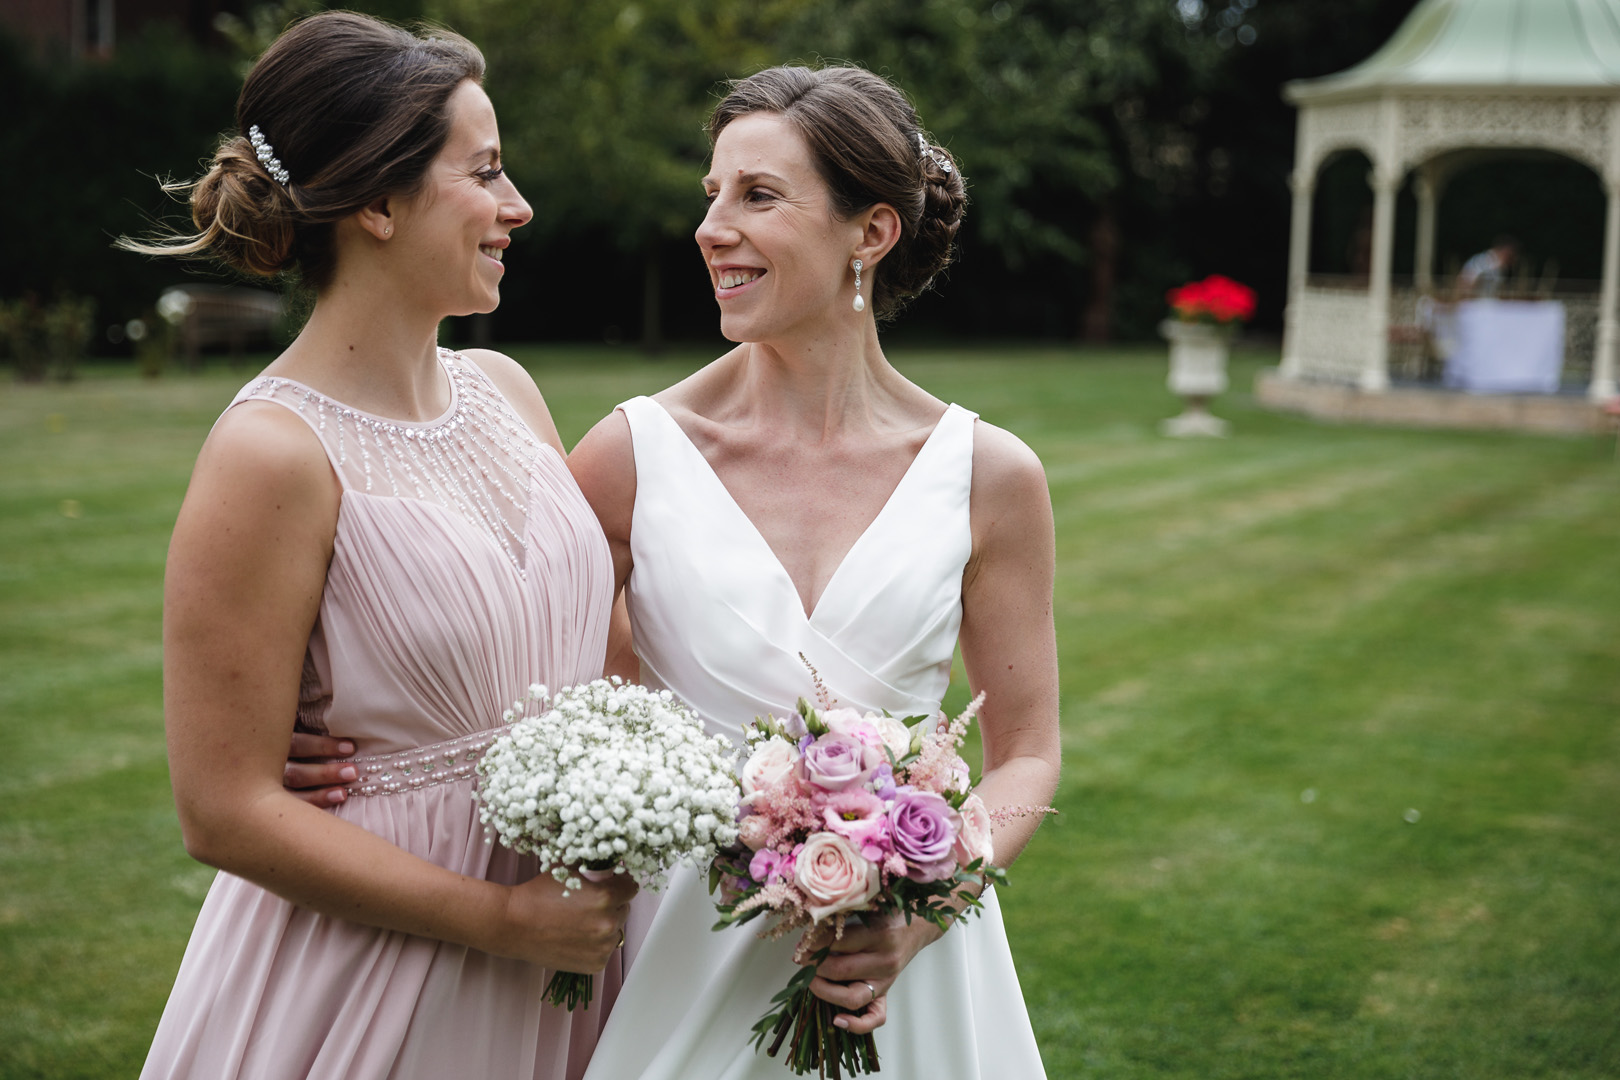 Bride and bridesmaid smiling